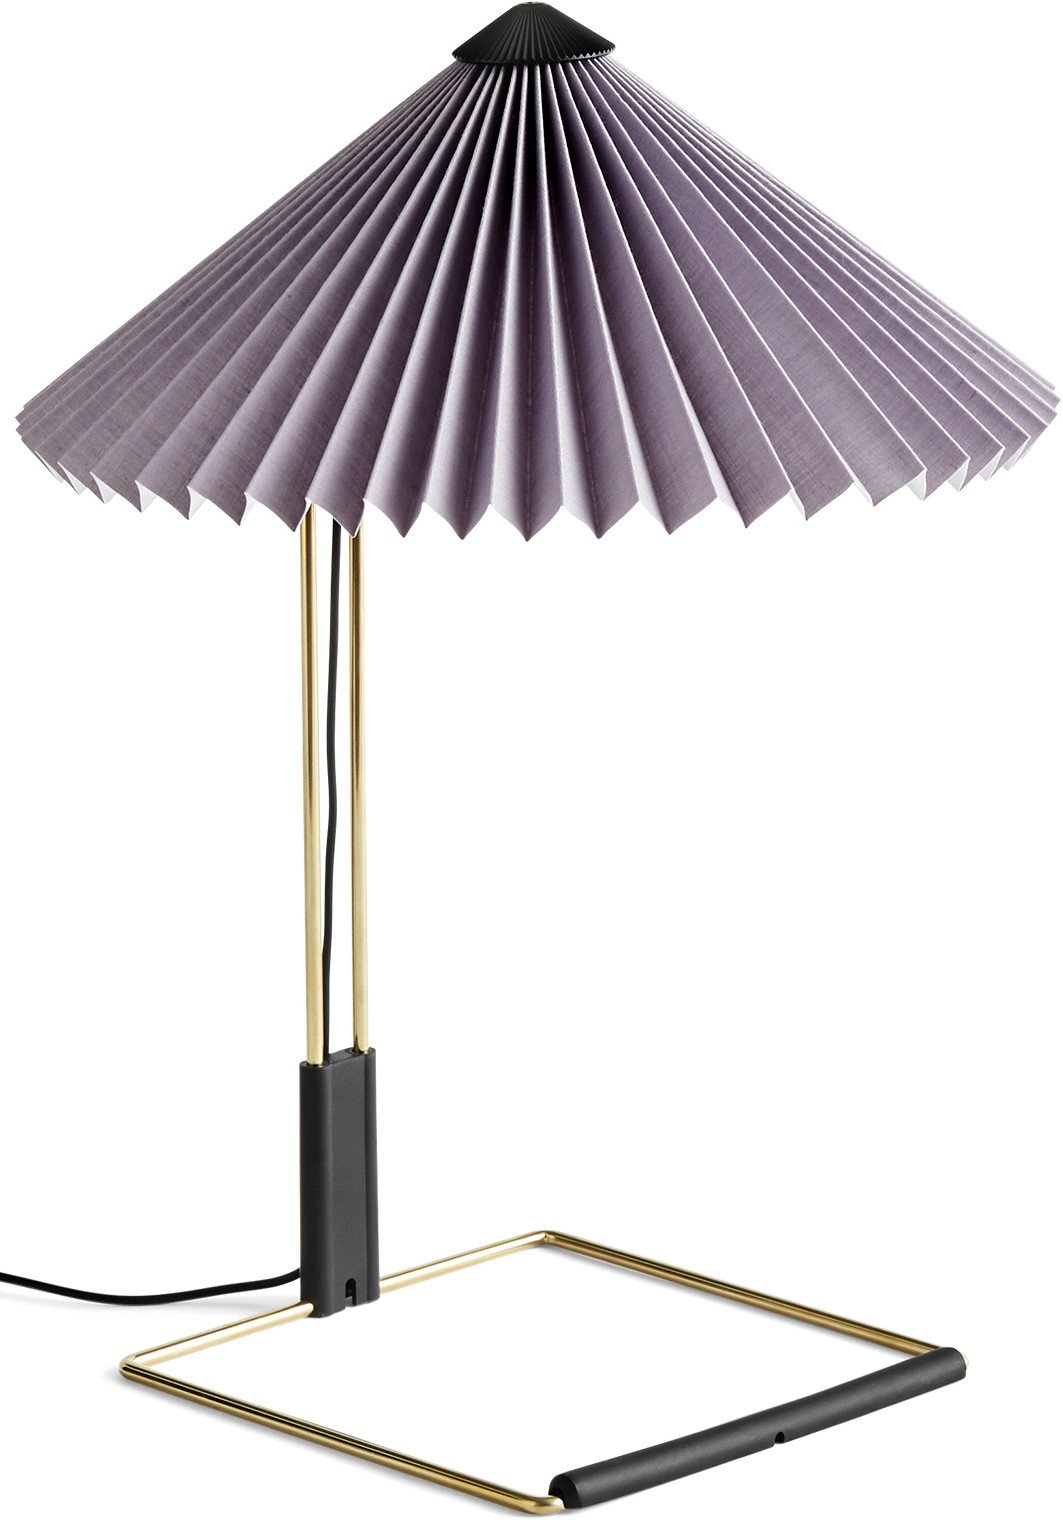 Table Lamp Matin S Ø300 Lavender by I. Sempé for HAY